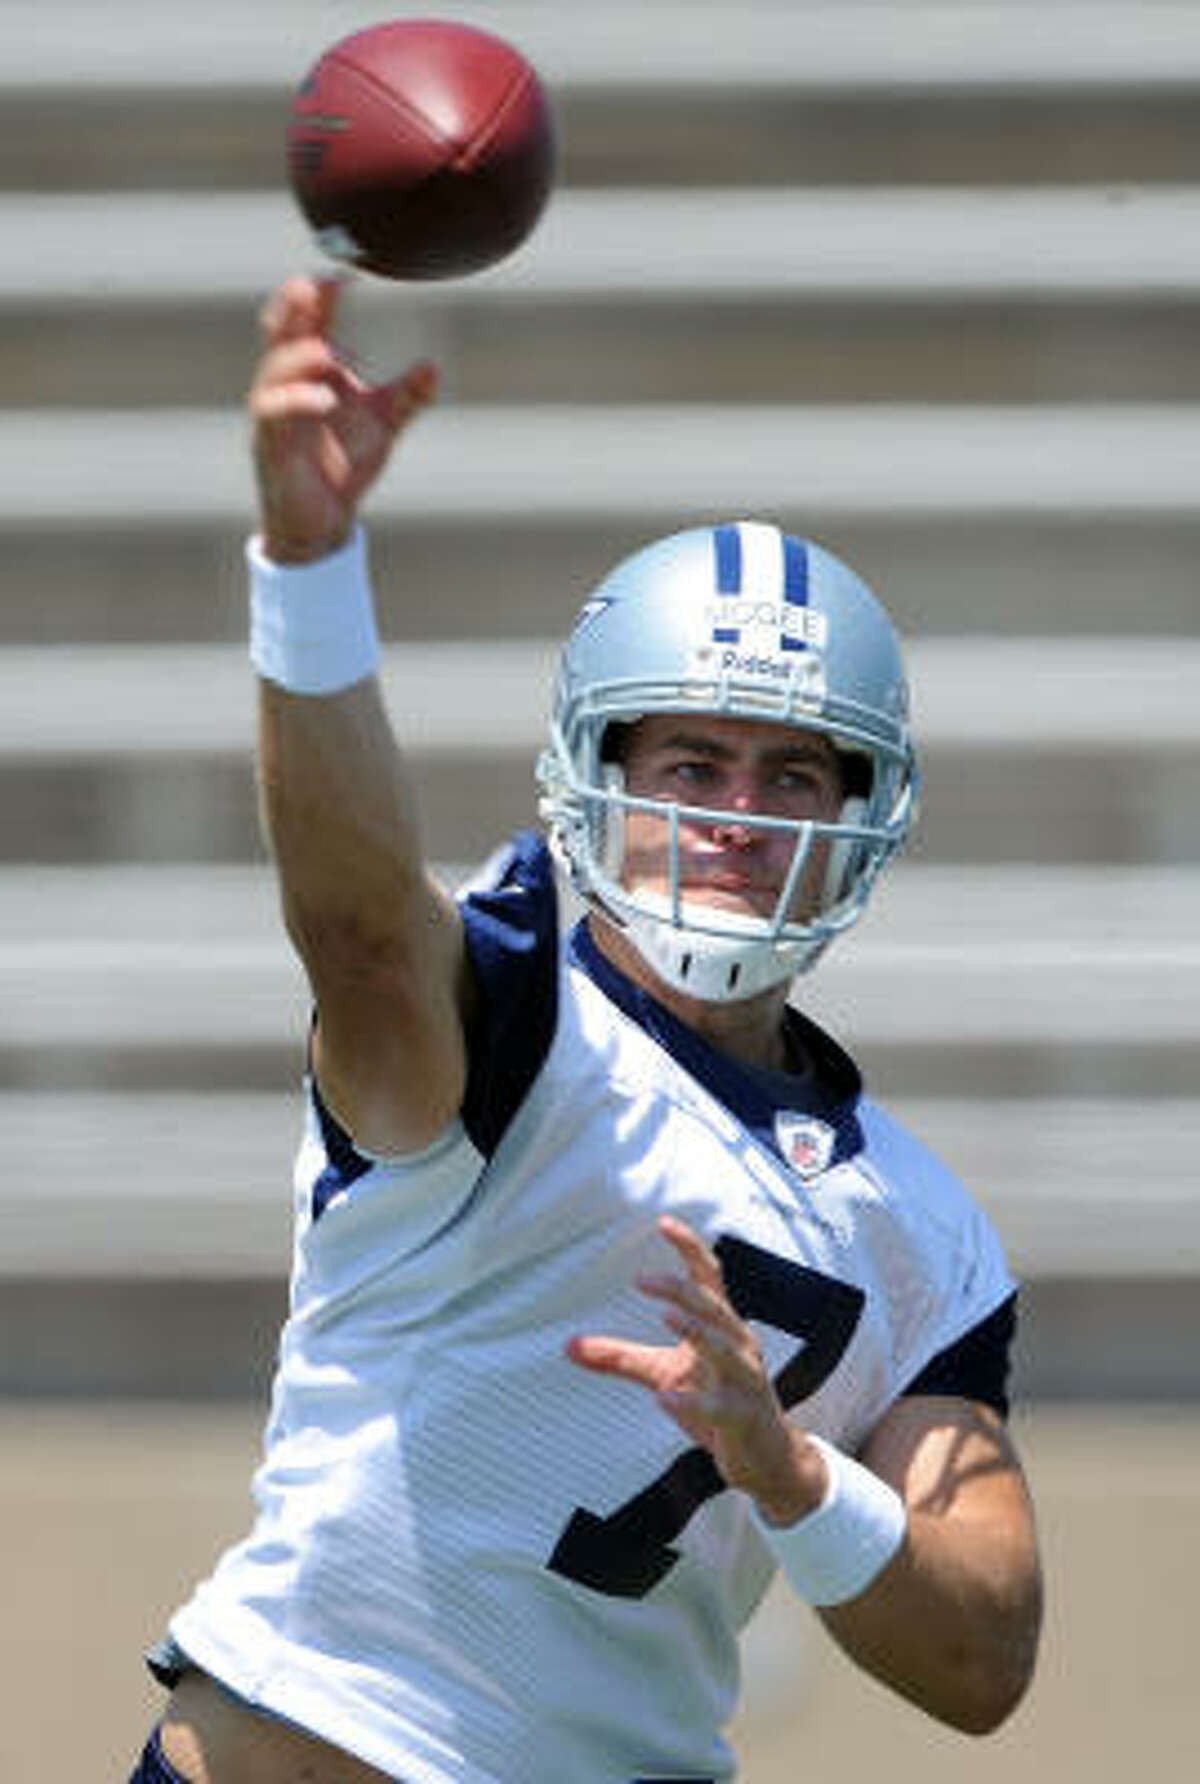 Dallas Cowboys Former Texas A&M quarterback Stephen McGee warms up with some tosses Tuesday, June 16 in Carrollton.